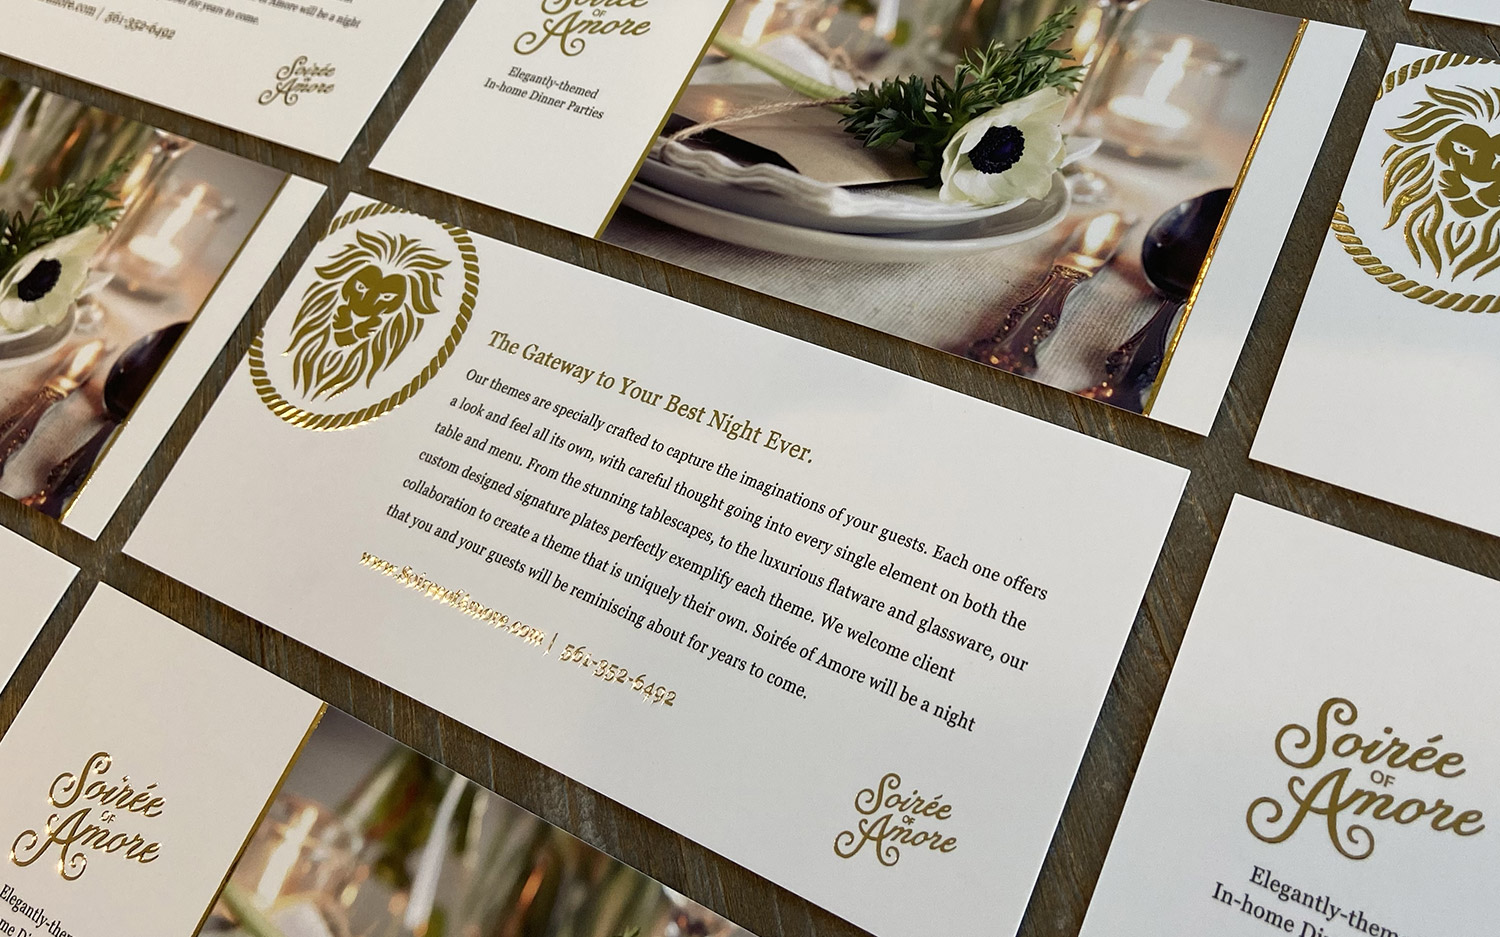 Soirée of Amore – Promo Cards